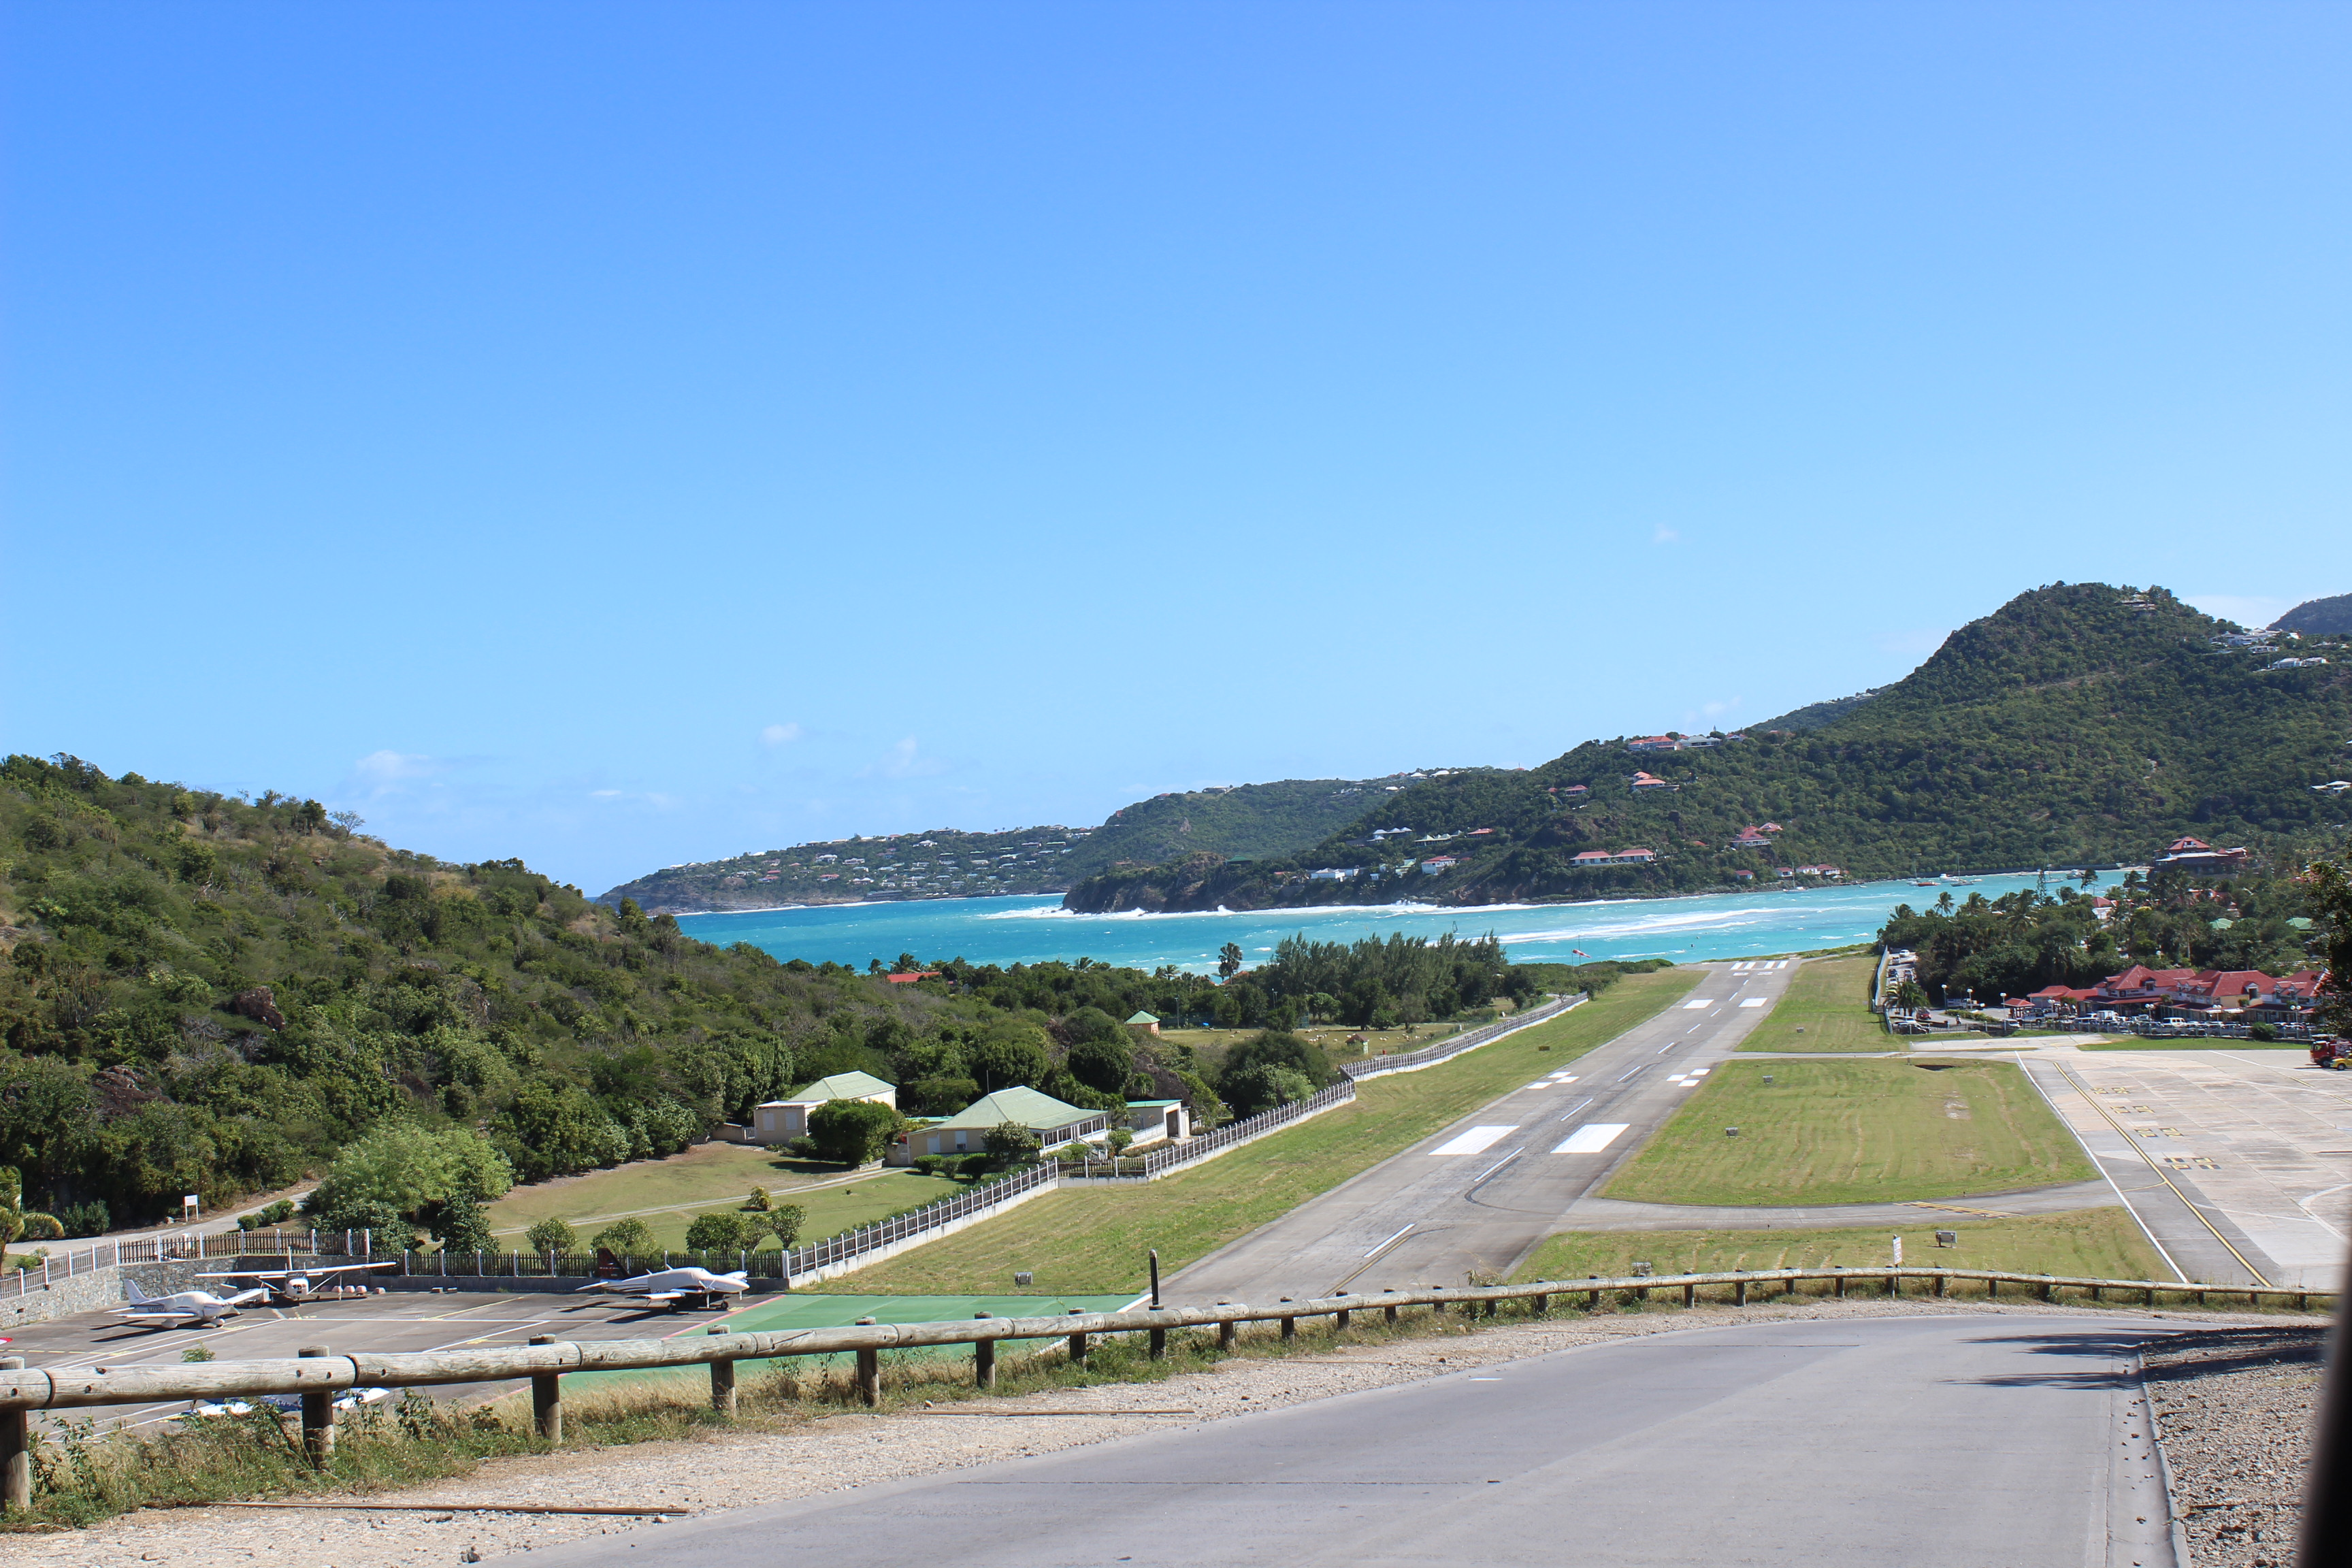 piste atterrissage st-barth